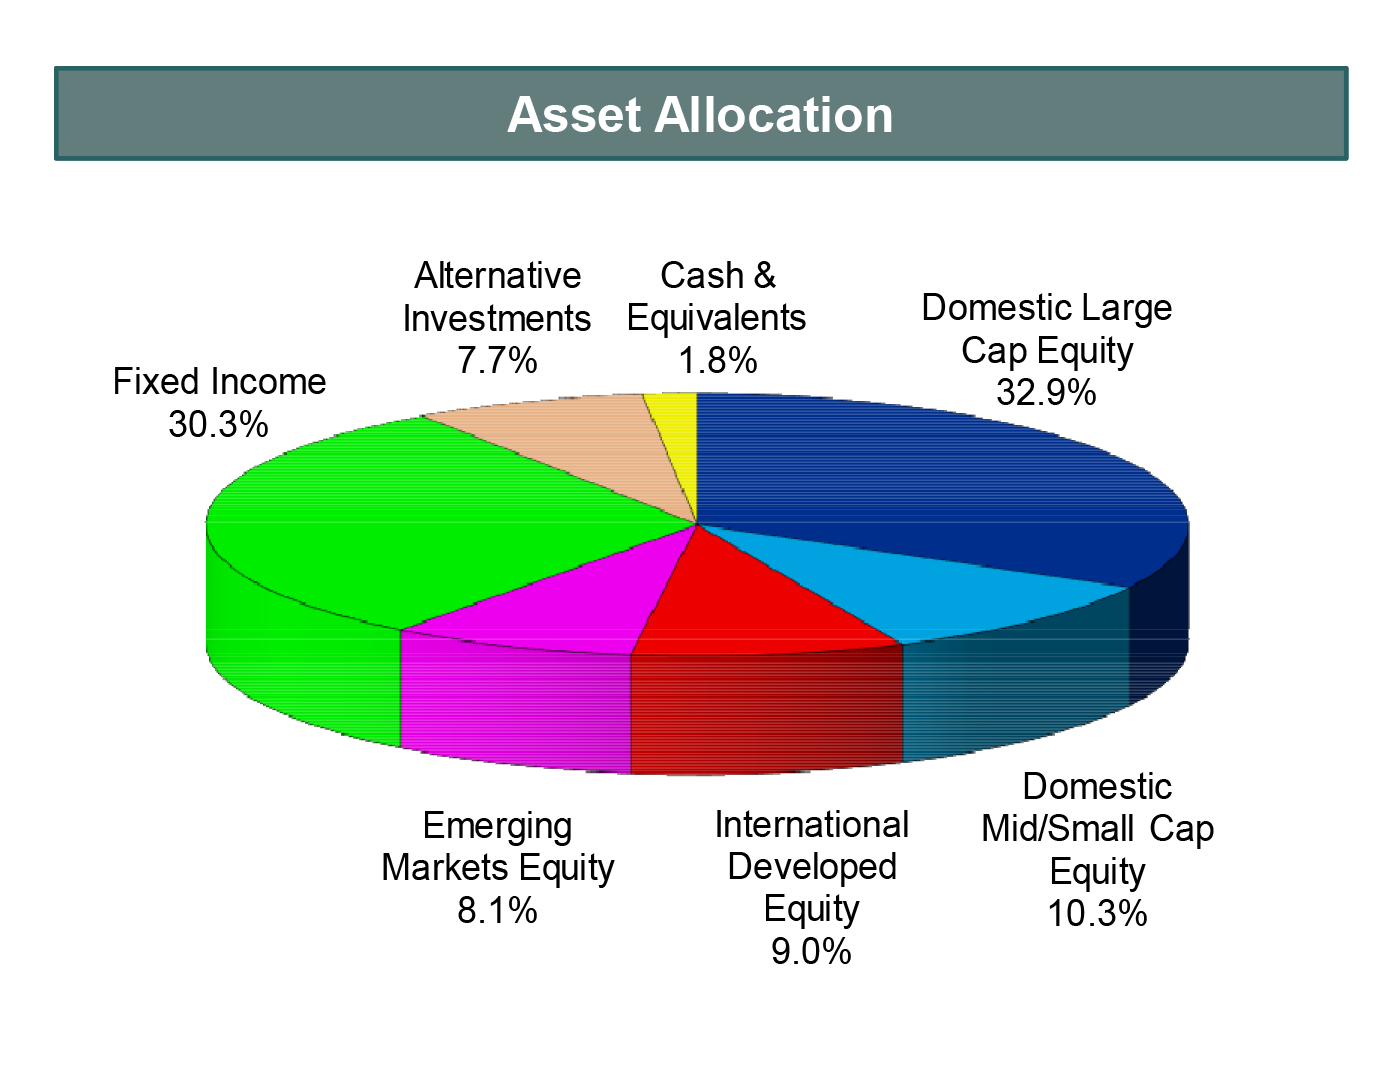 Asset Allocation 3-31-2018